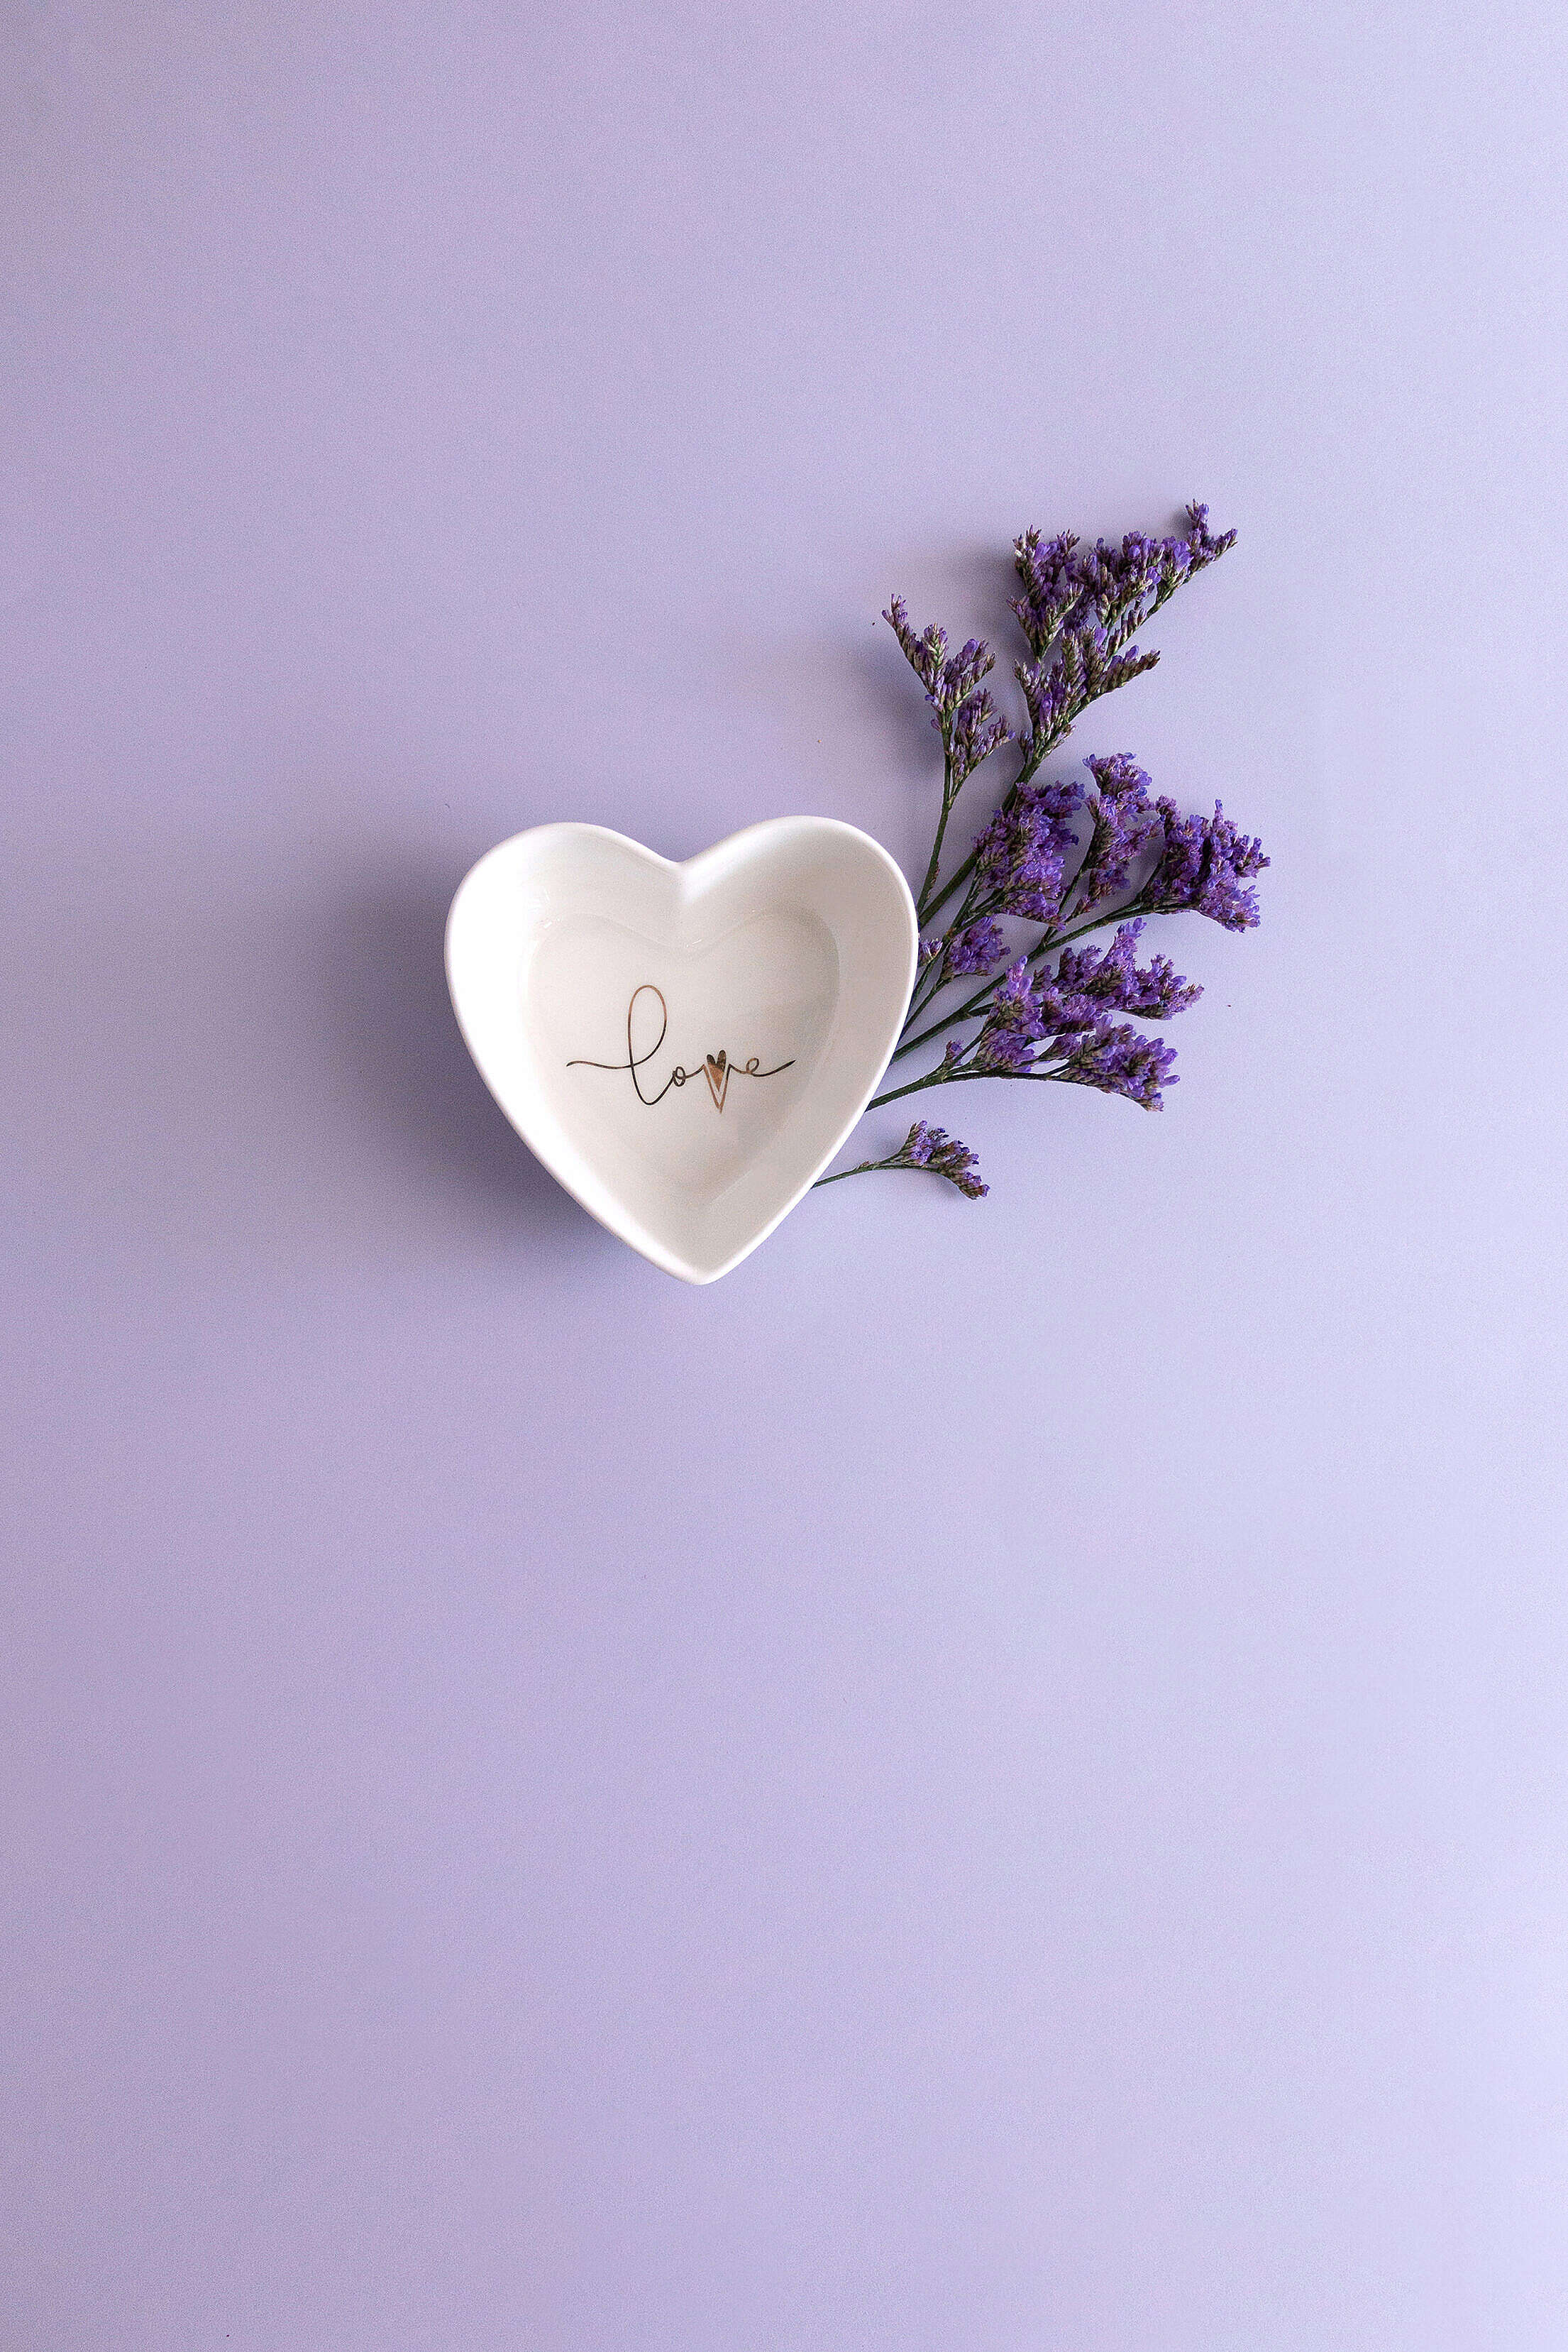 Heart Shaped Bowl with Flower on Purple Background Free Stock Photo